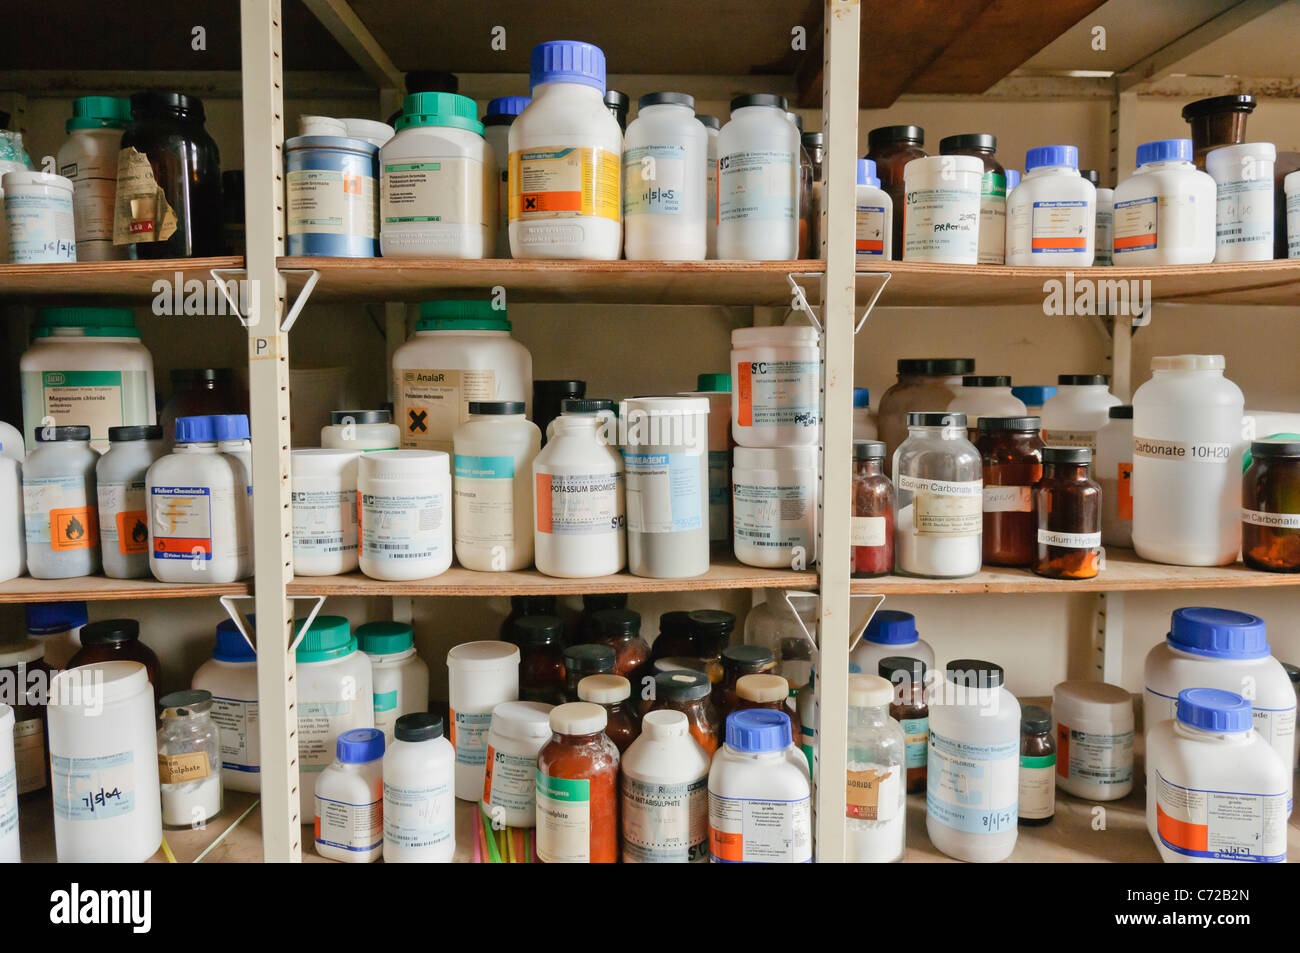 Chemicals On The Shelves Of A School Chemistry Laboratory